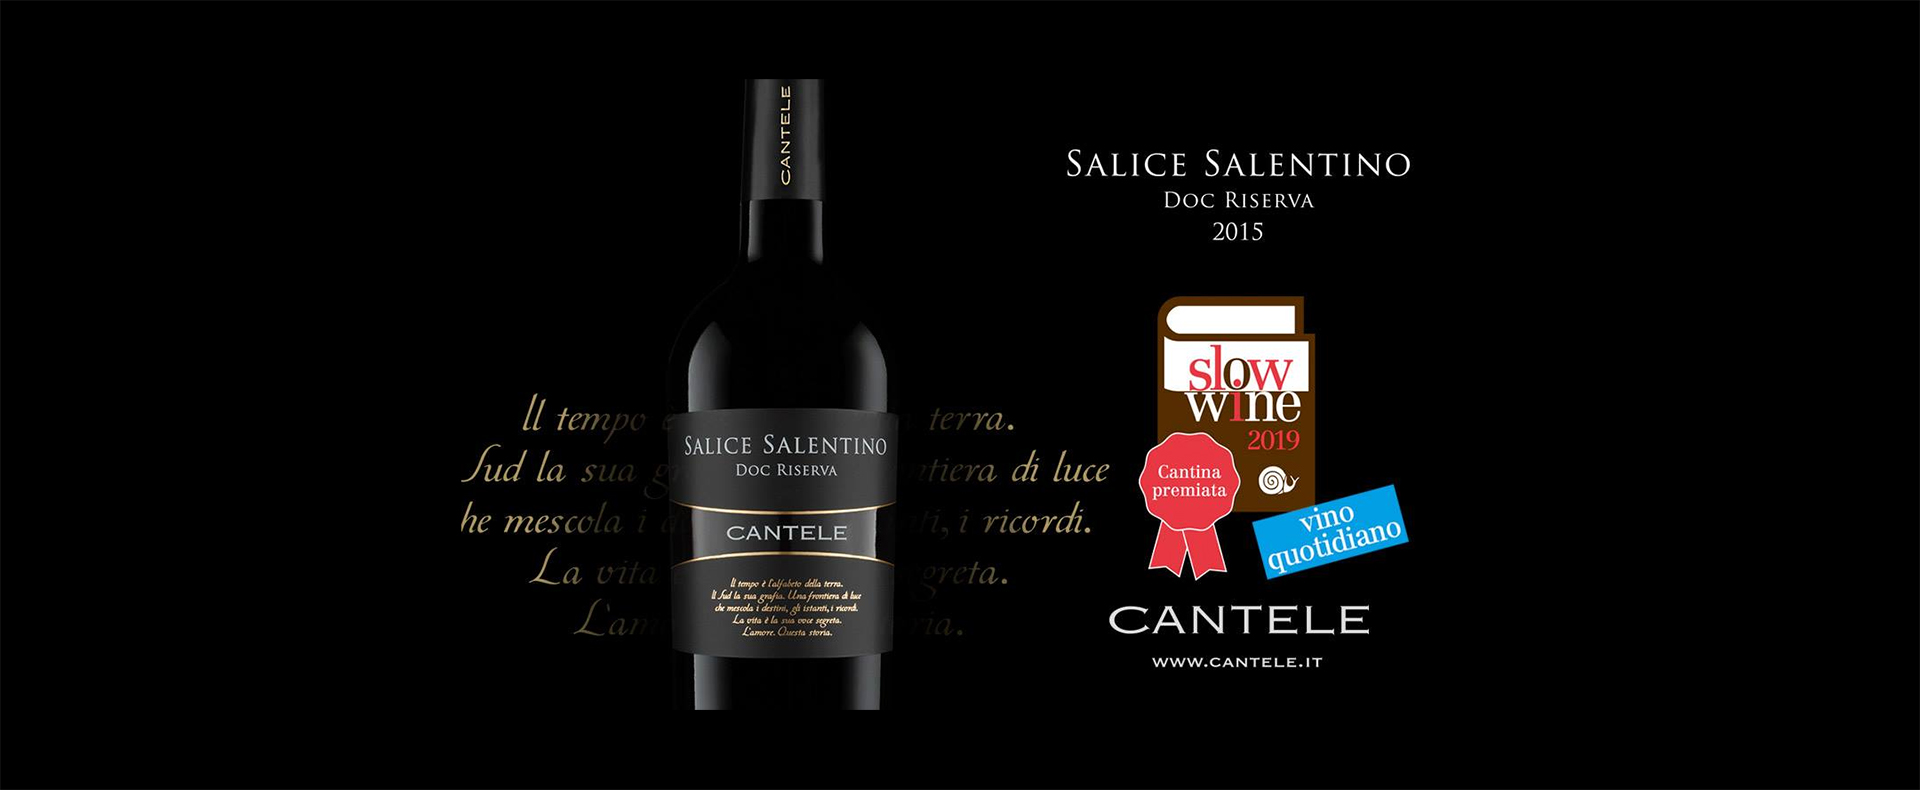 "Cantele Salice Salentino wins Slow Wine award for ""daily wine"""